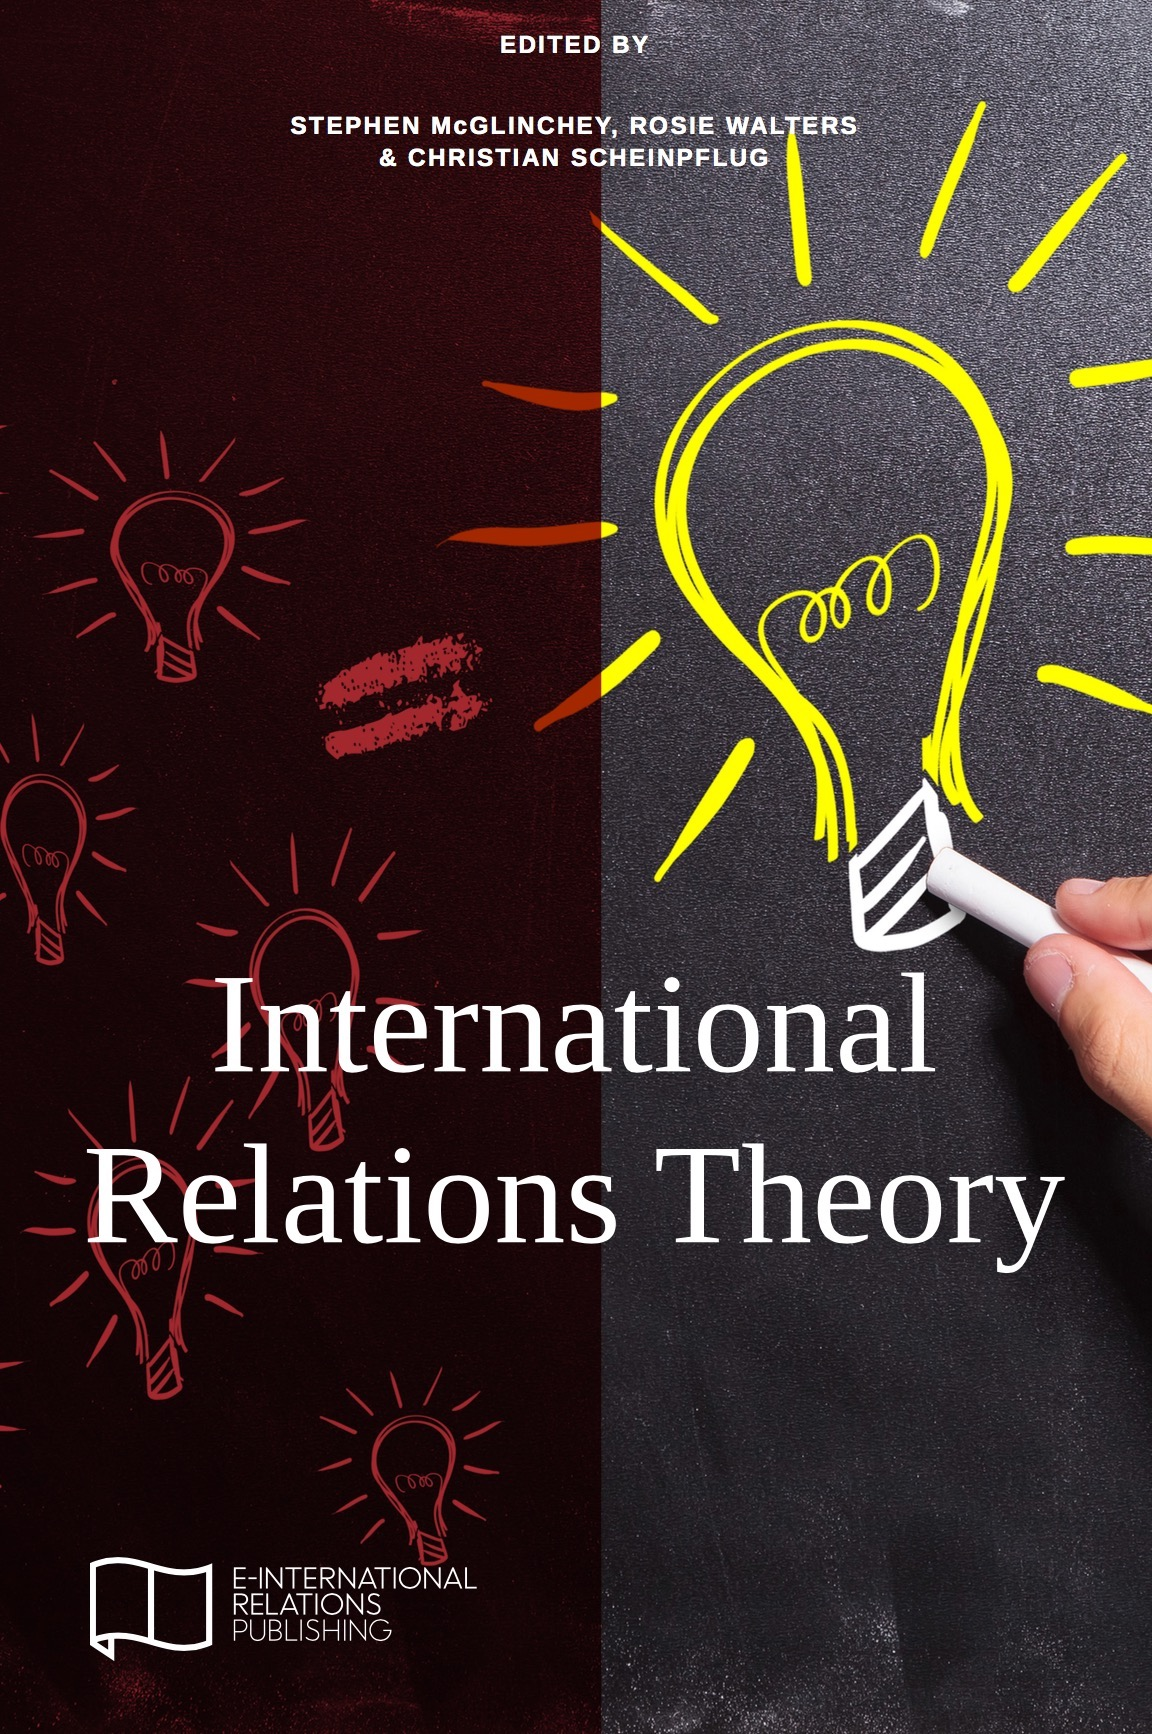 Ir theory article review doyle